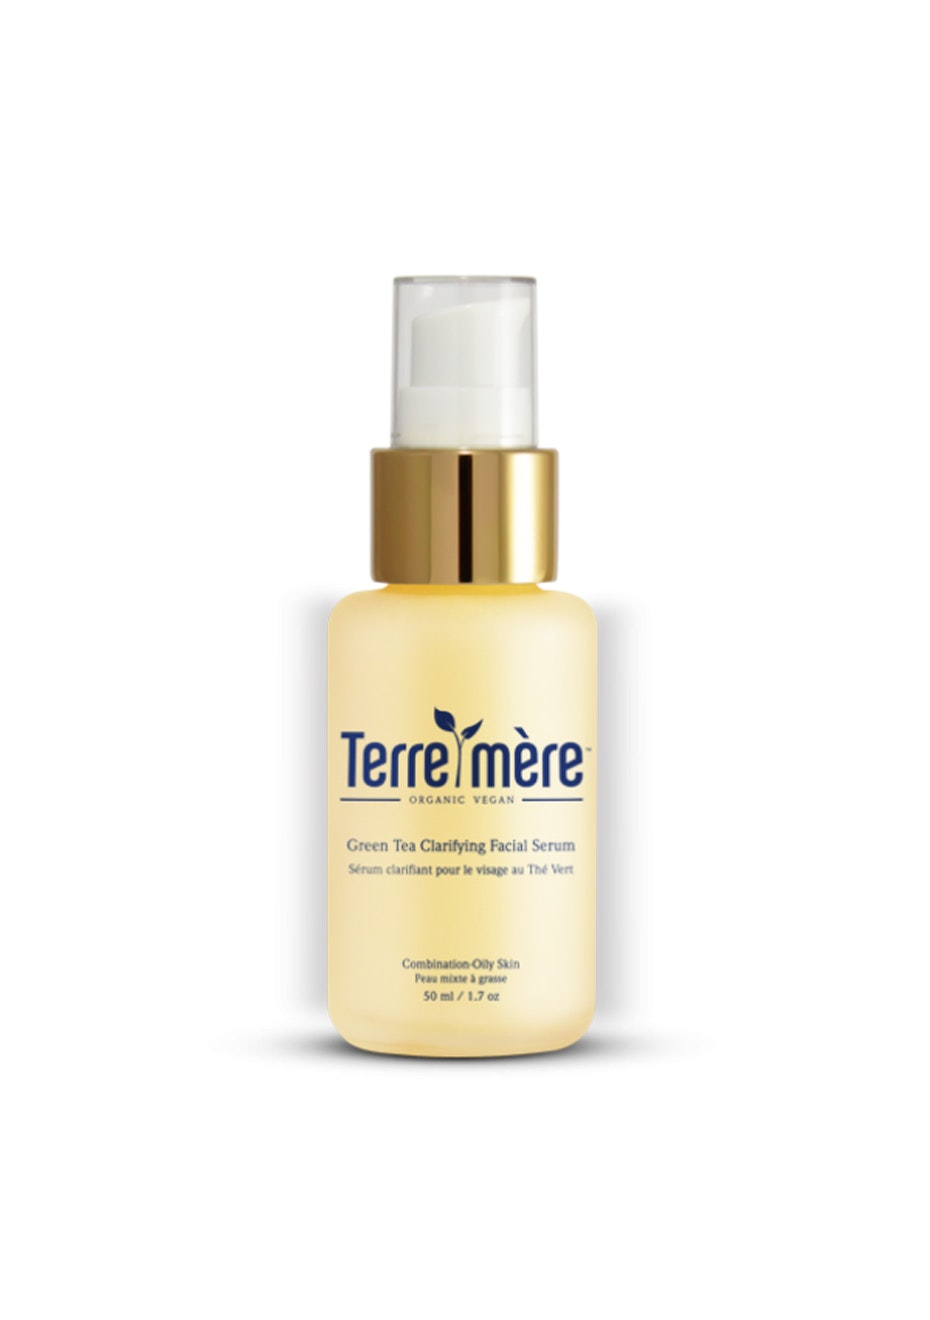 Terre Mere - Green Tea Clarifying Facial Serum - Combination-Oily Skin